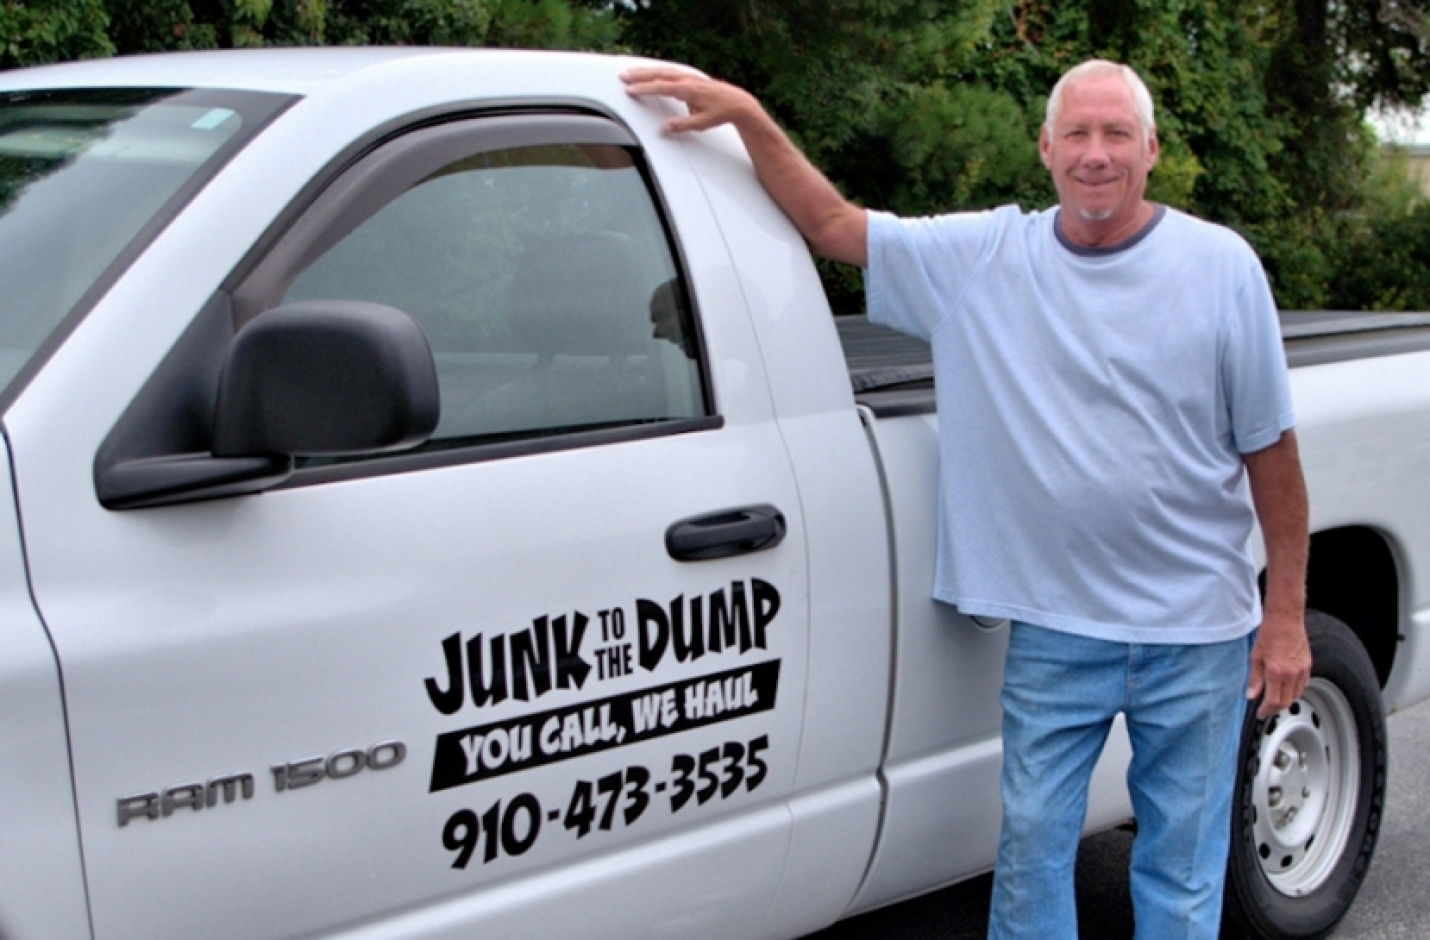 Junk to the Dump: You Call, We Haul